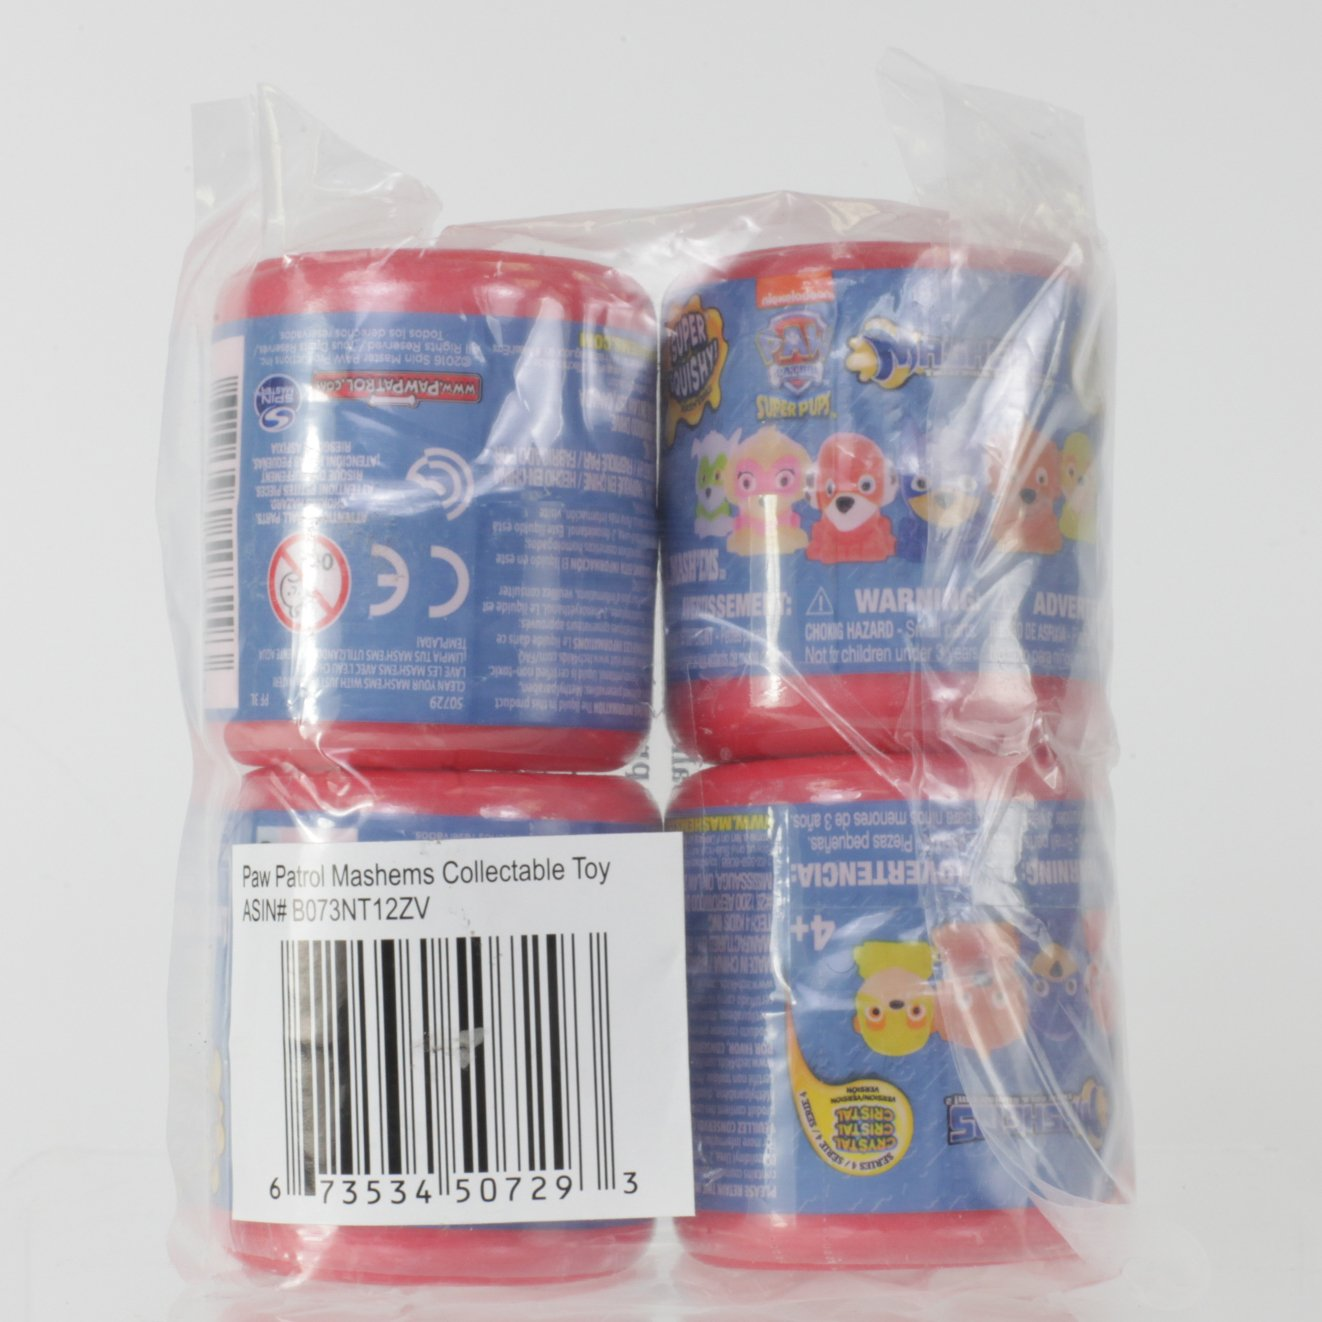 Mash'Ems - Paw Patrol 4 Pack (4 Blind Capsules Per Order) Squishy Collectible Toy by Basic Fun (Image #3)